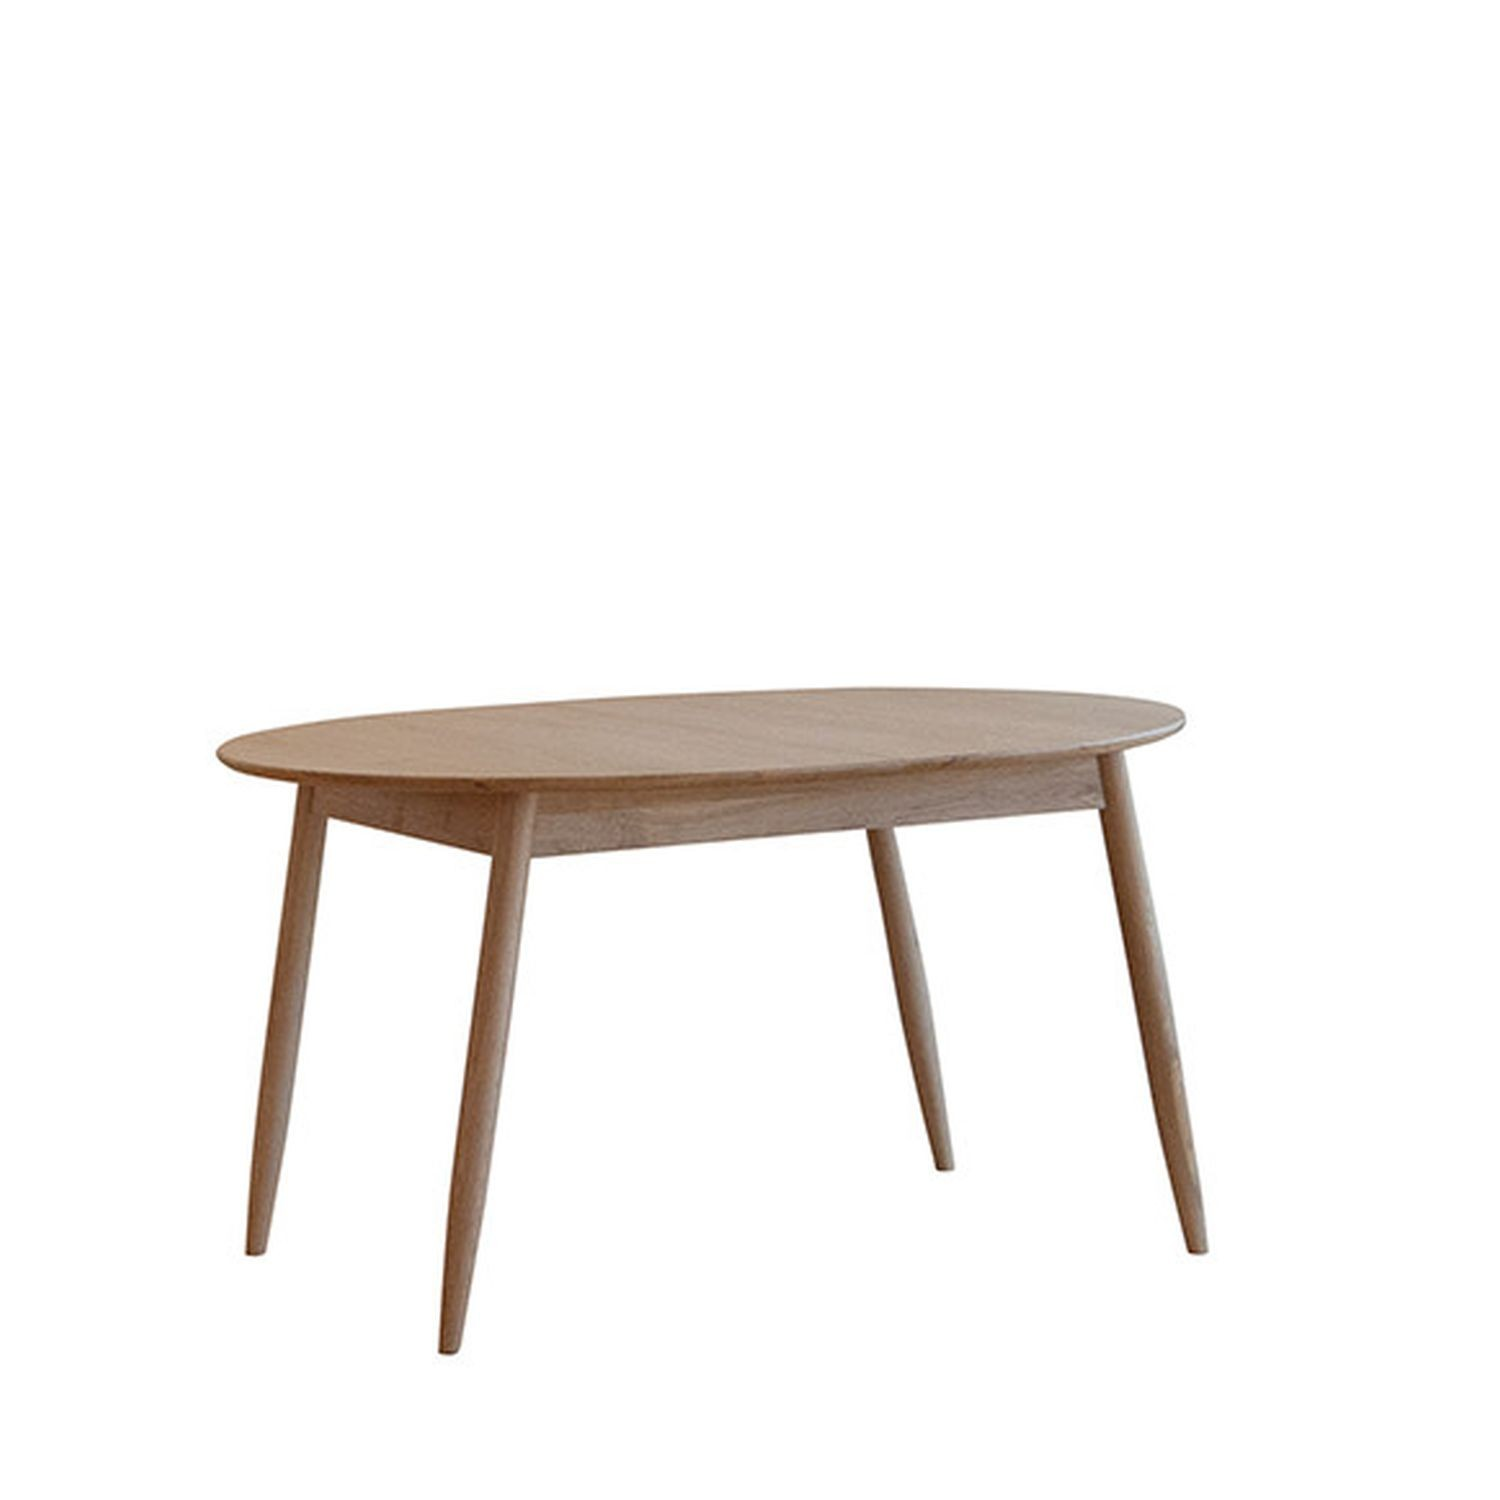 ercol teramo small ext dining table table brown leekes